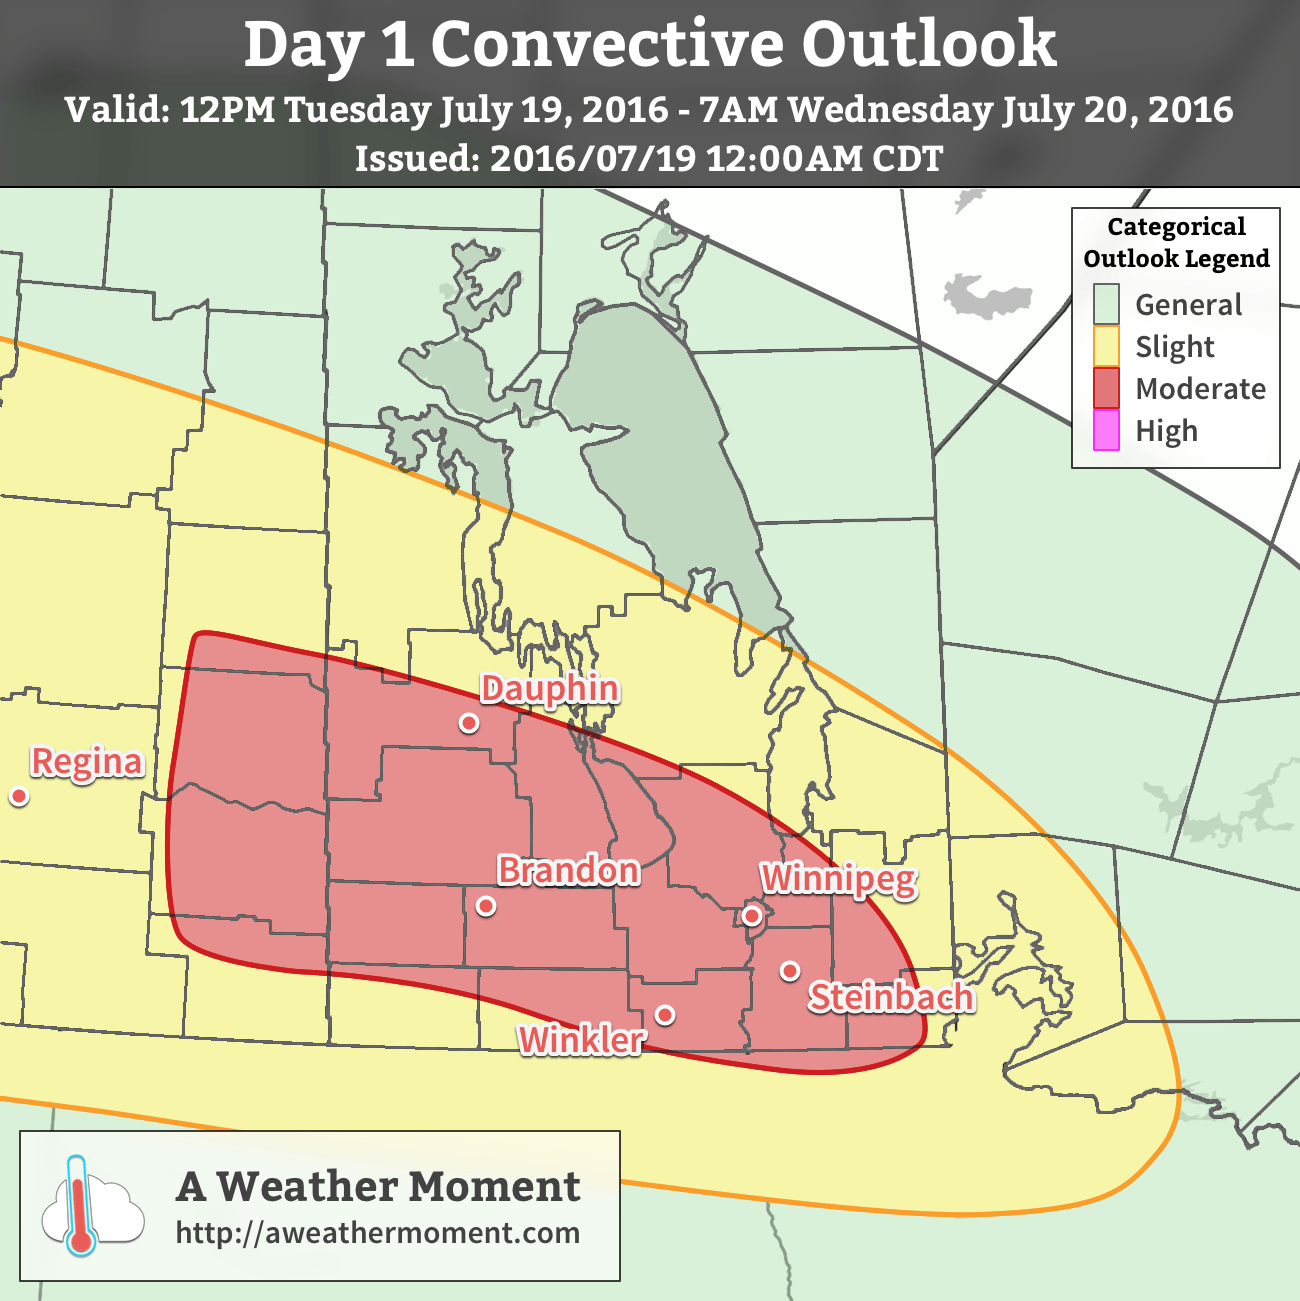 AWM Day 1 Convective Outlook for Tuesday July 19, 2016